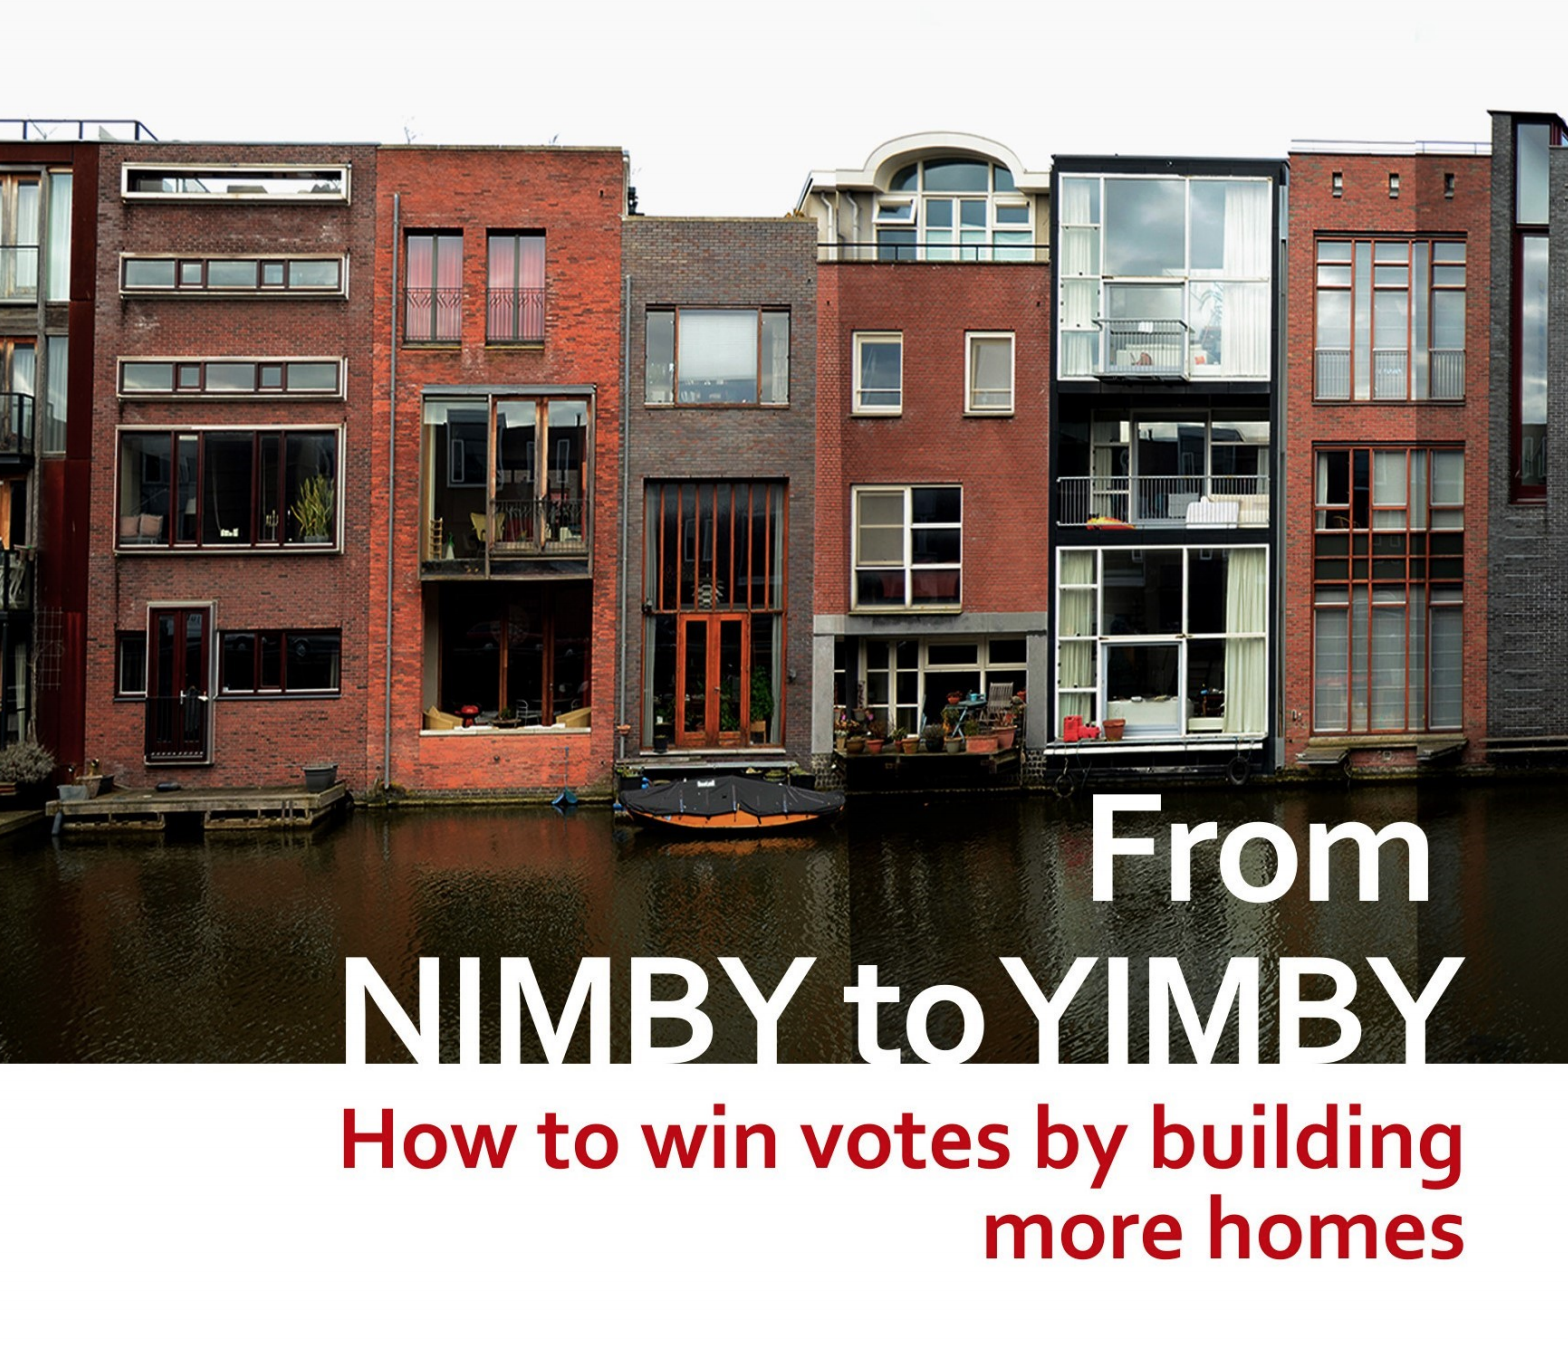 From NIMBY to YIMBY cover thumbnail.png